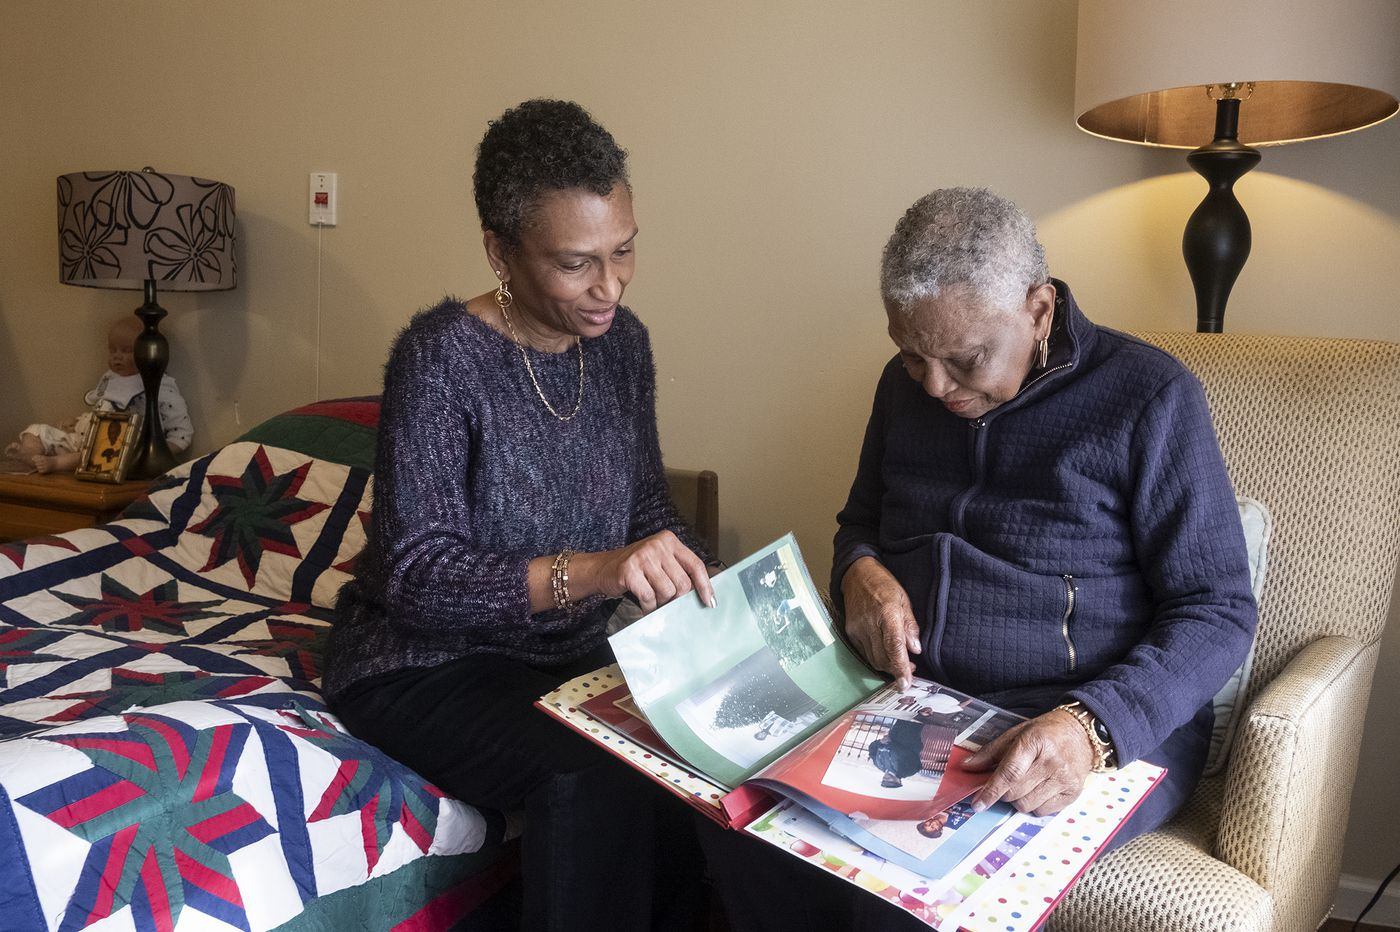 Dementia makes moving to a new place hard on everyone. Here's how to make it easier.